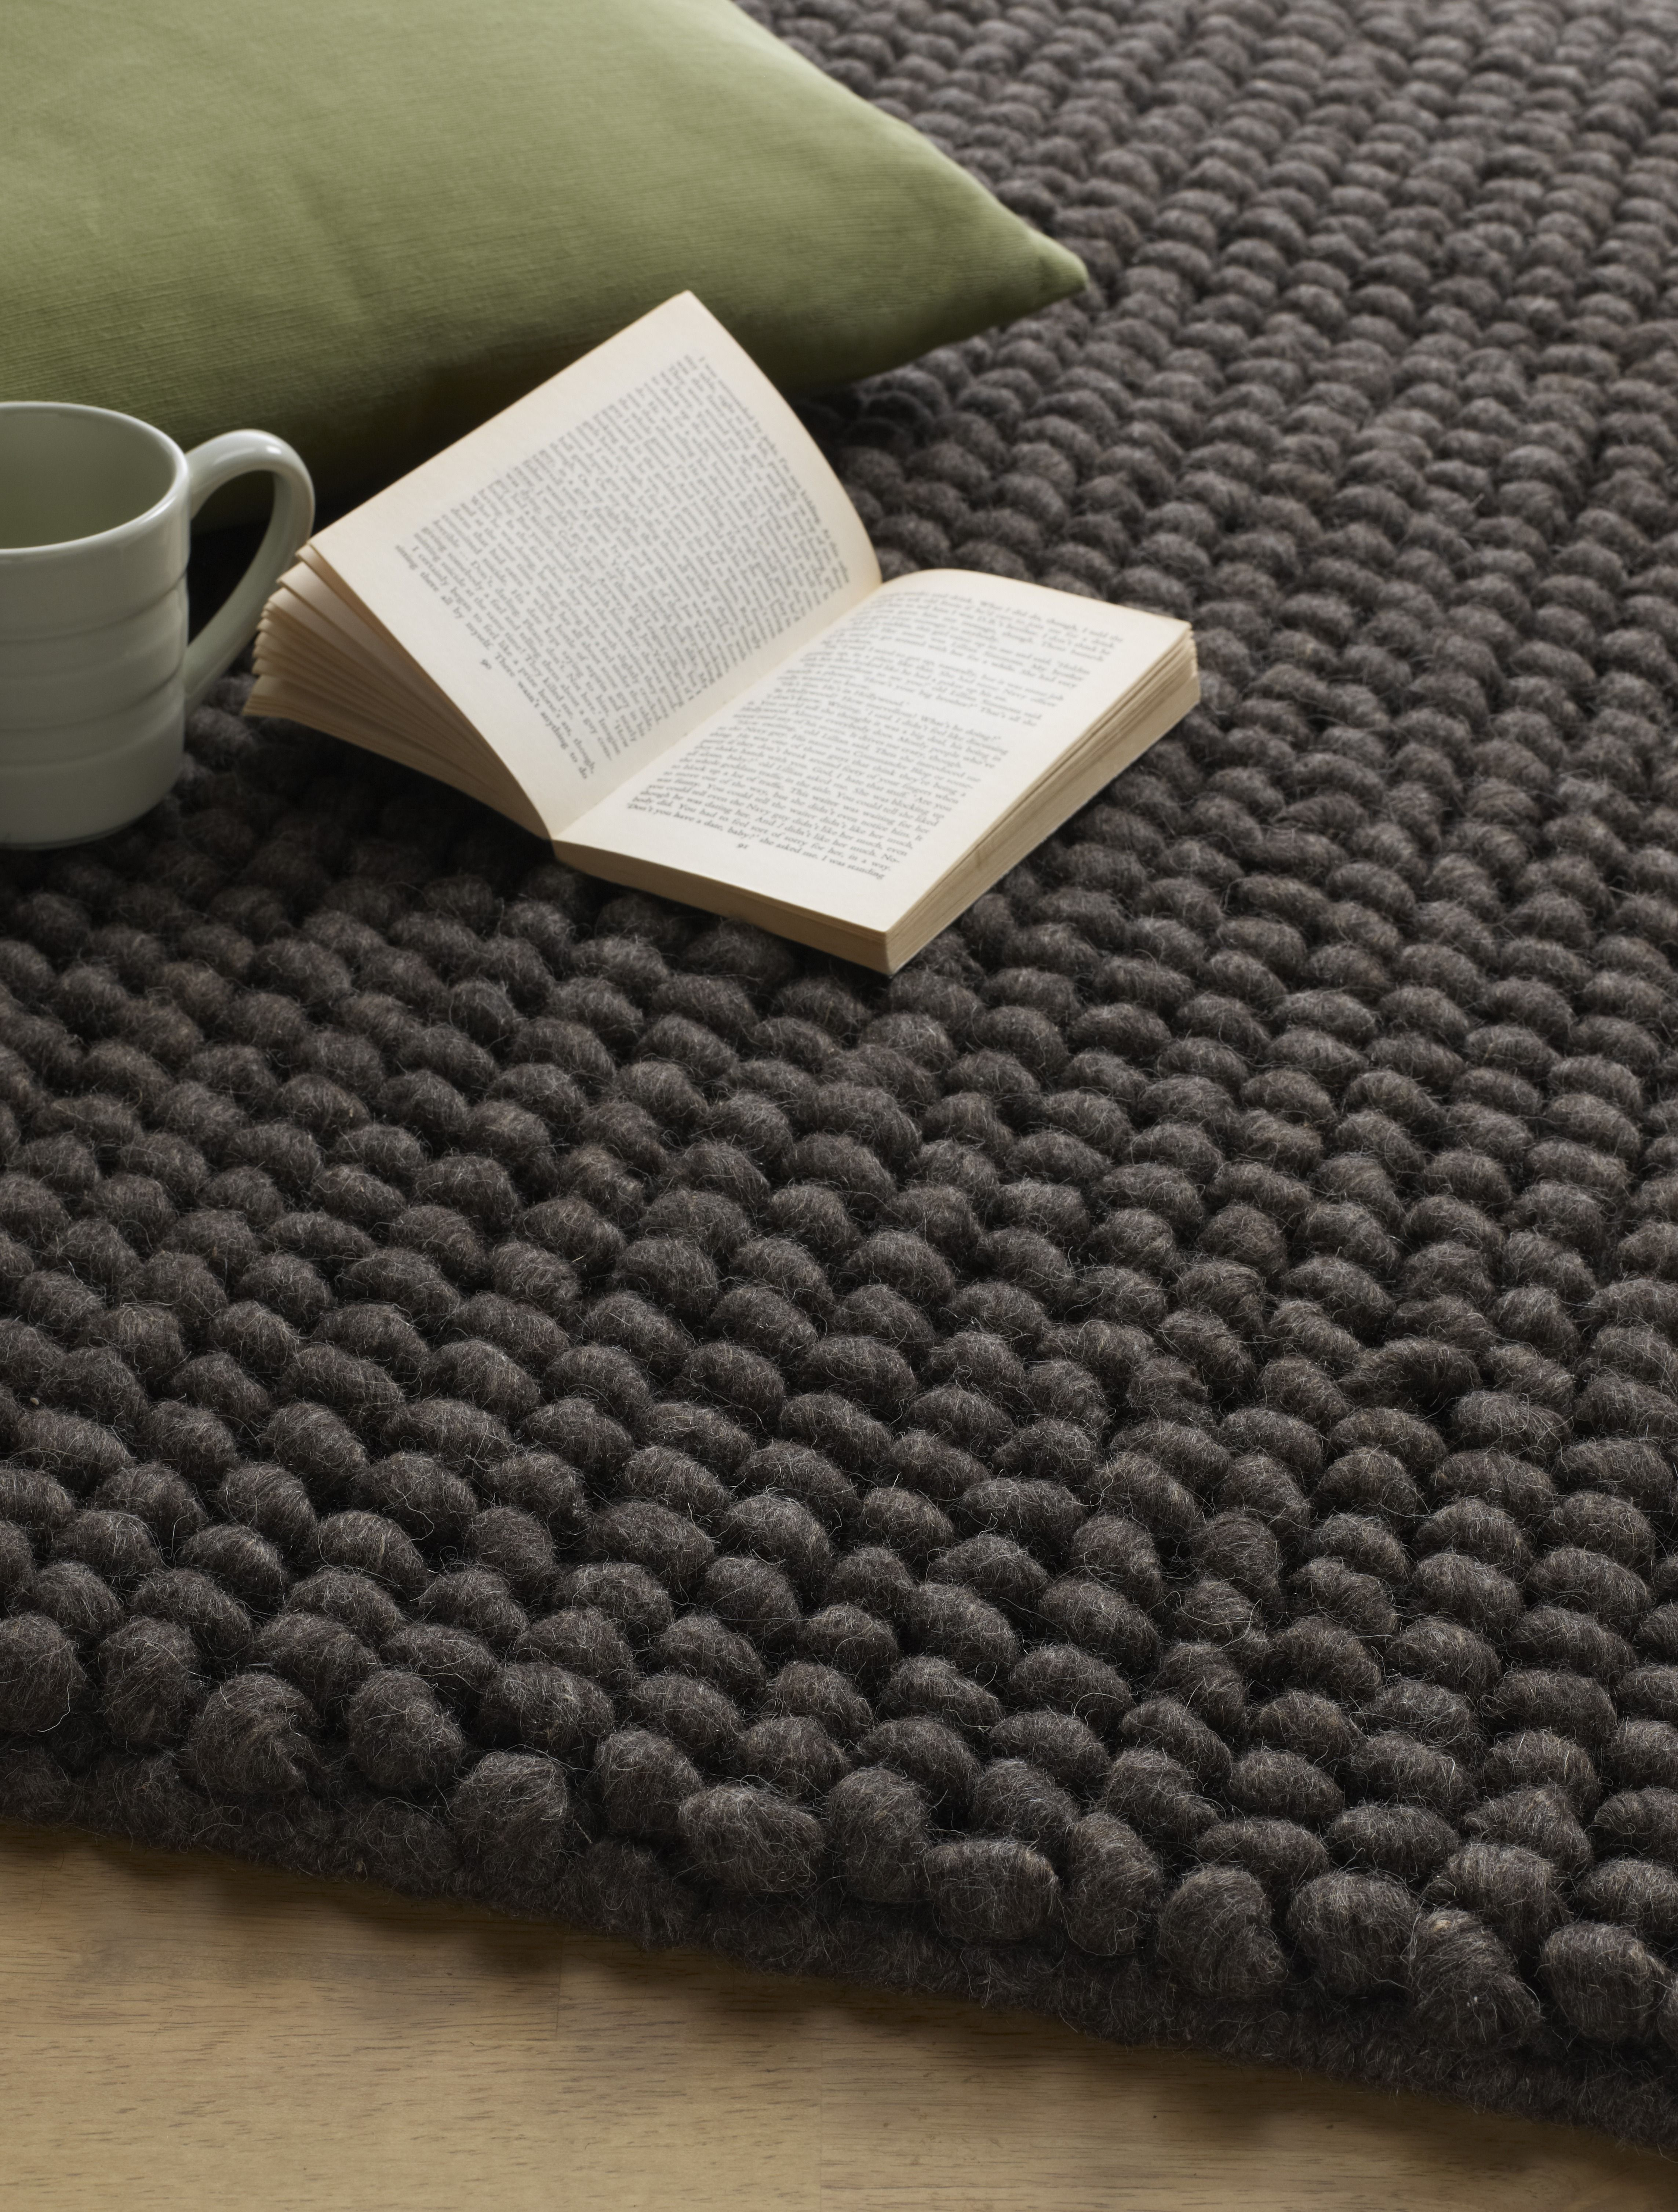 Pebbles Charcoal By Jacaranda Hand Woven Rugs Carpets Supplied Dible And Roy 01225 862320